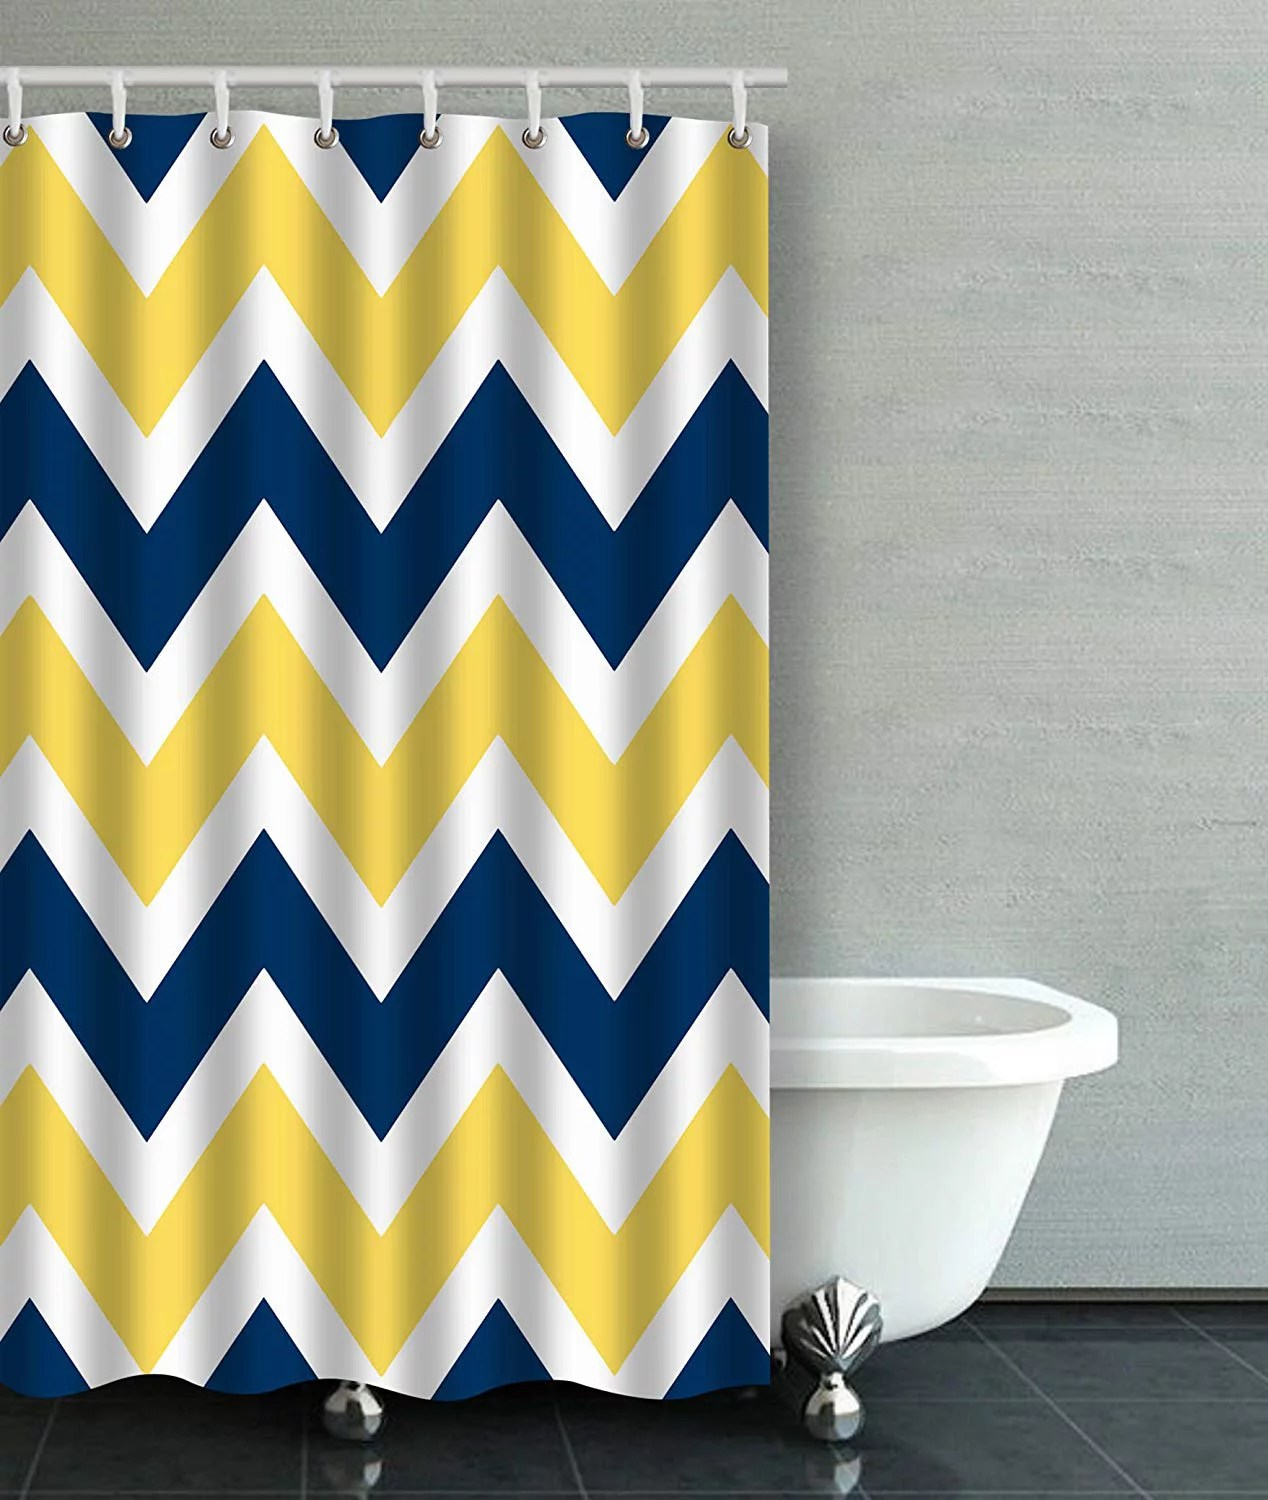 artjia navy blue and yellow chevron zigzag pattern bathroom shower curtain 48x72 inches